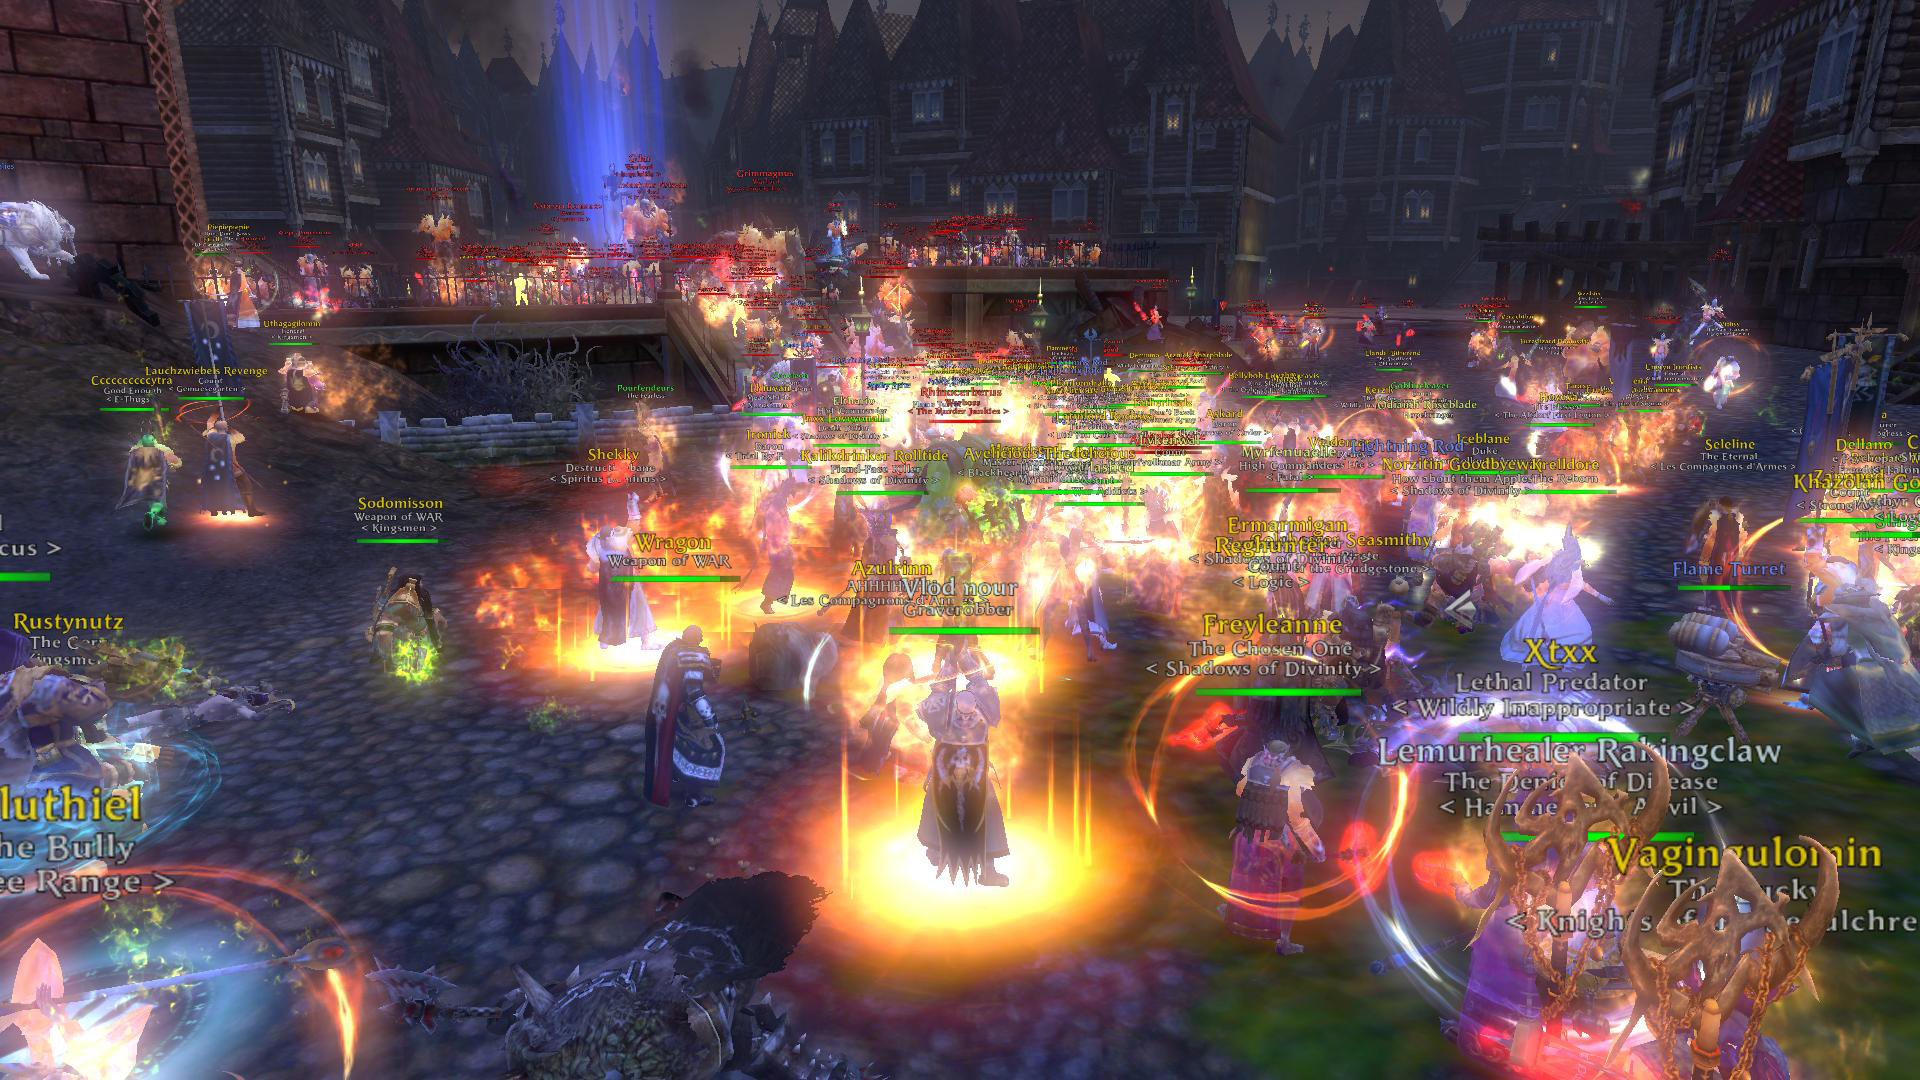 Warhammer Online Shuts Down, Private Server Launches #30078